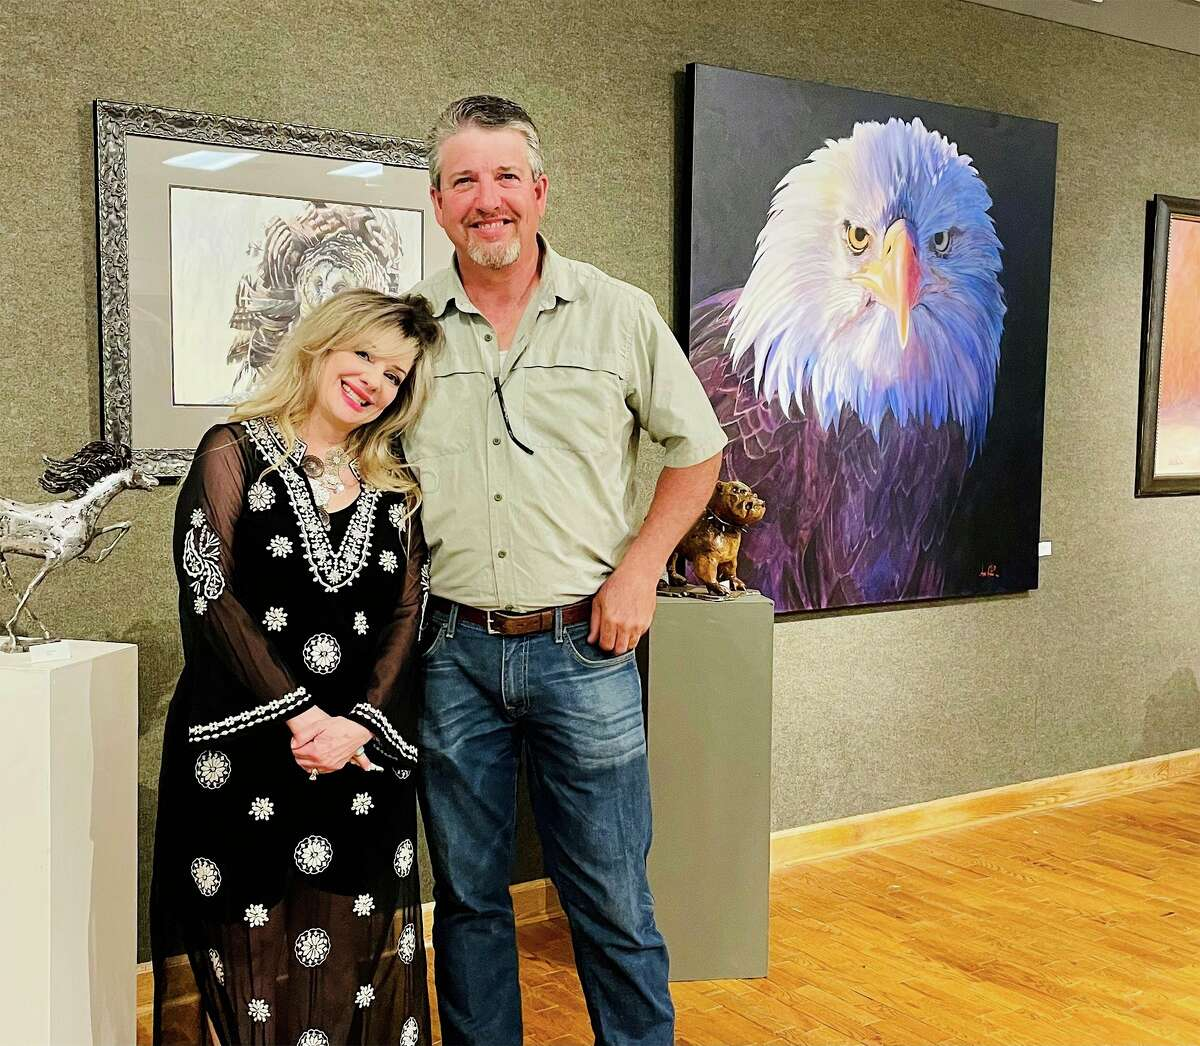 Watercolor artist Anni Crouter and barbed wire sculptor Jeff Best pose Thursday as part of the opening reception for their Wild Things exhibit at Artworks. The exhibit runs through July 1. (Courtesy/Artworks)